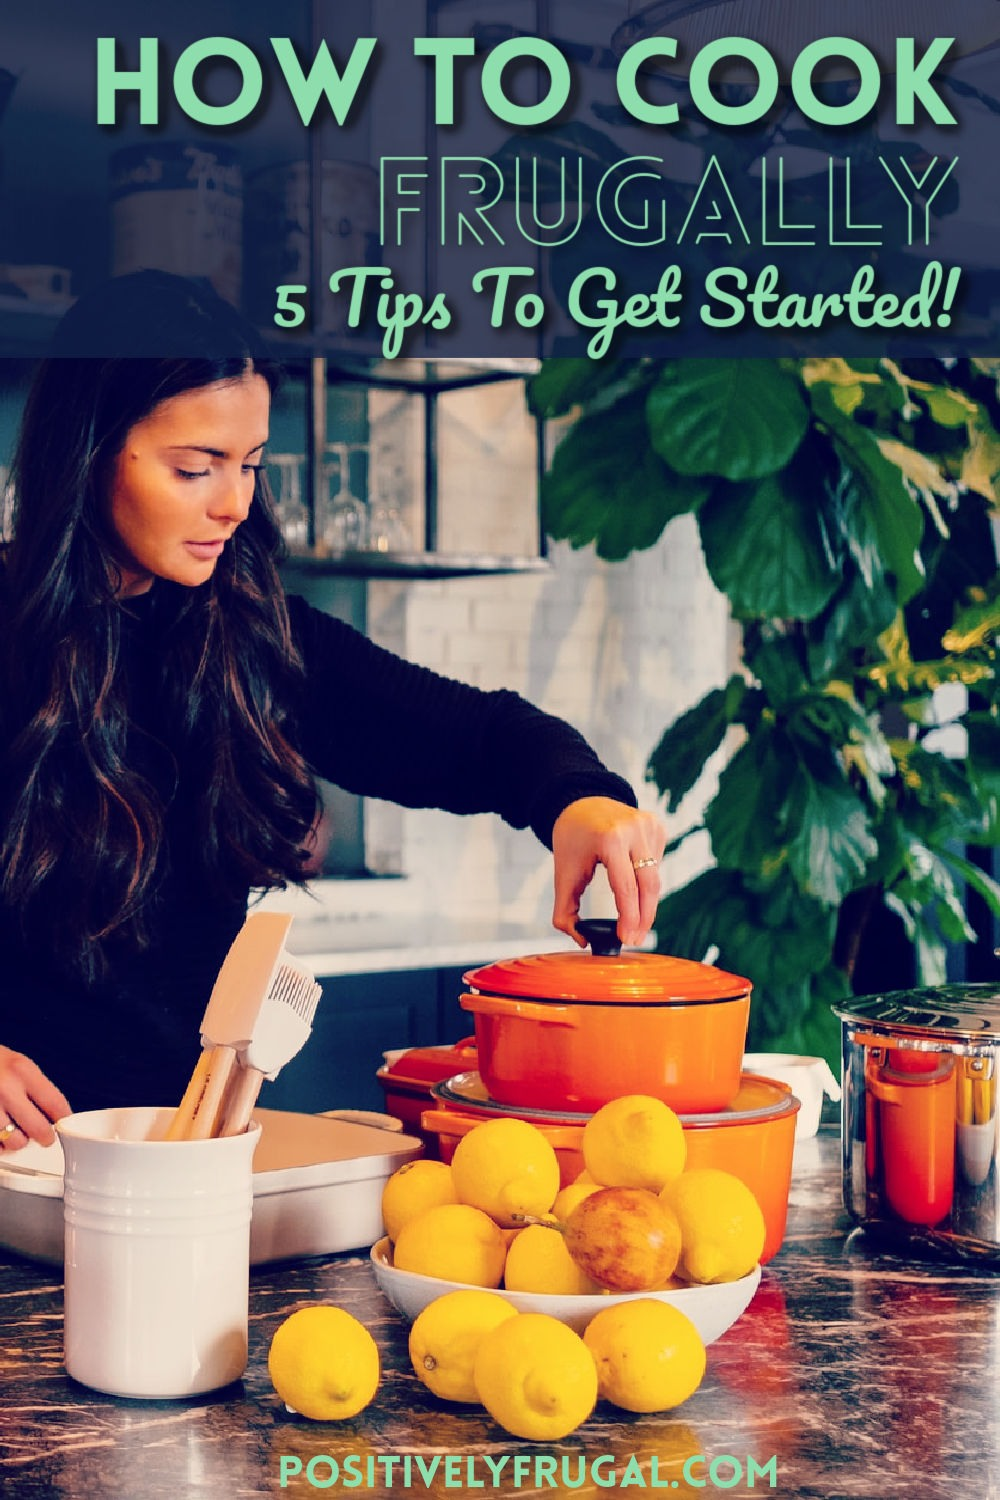 How To Cook Frugally 5 Tips for Frugal Cooking by PositivelyFrugal.com